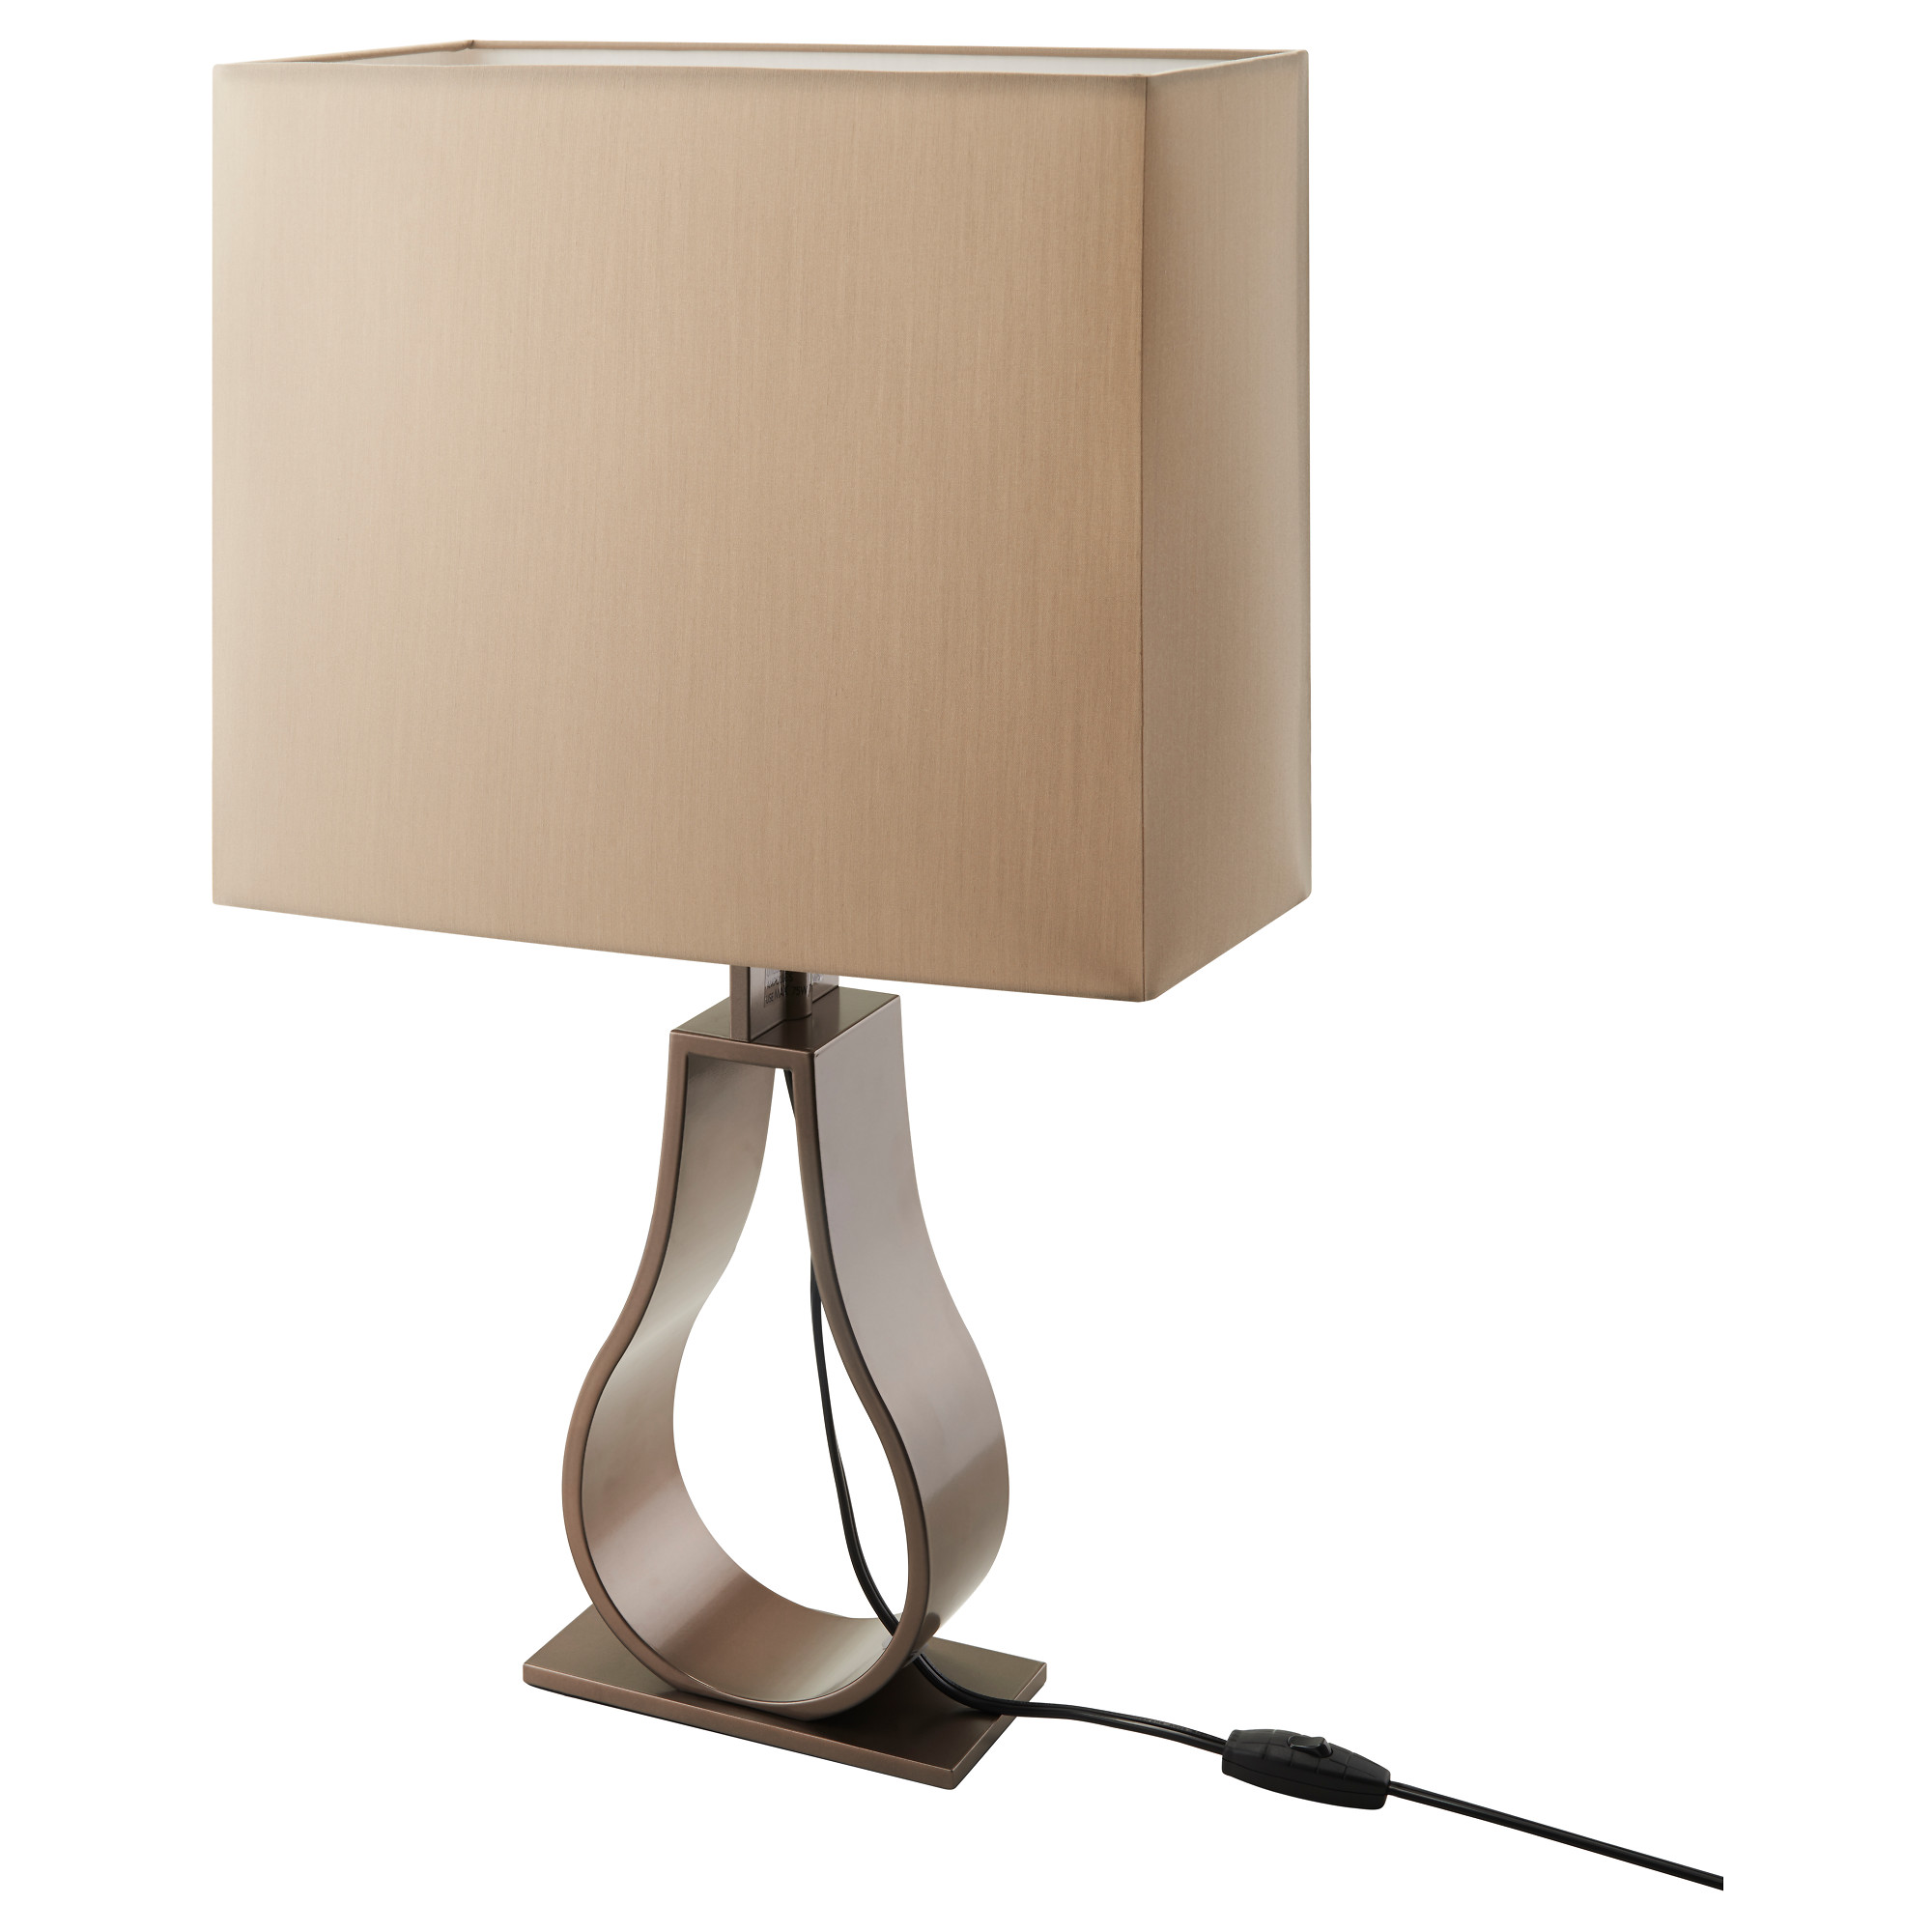 Lamp On Table: ,Lighting